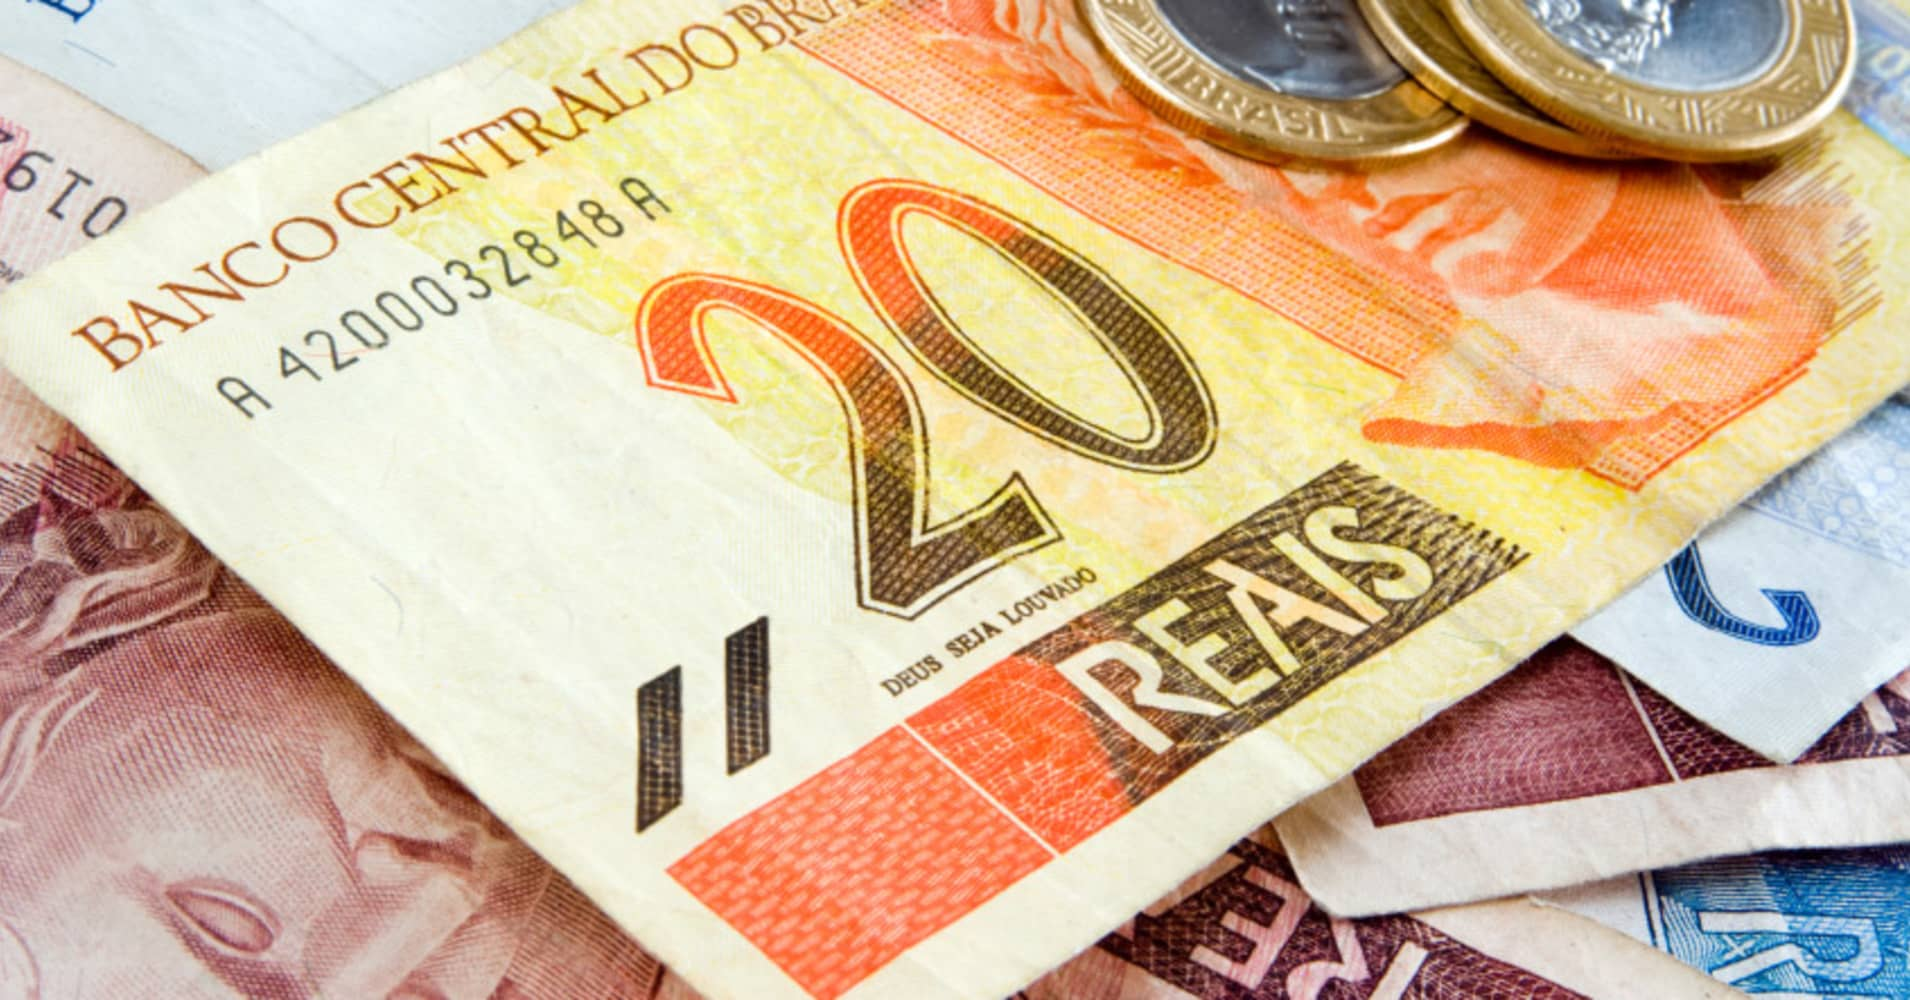 Betting on currency markets